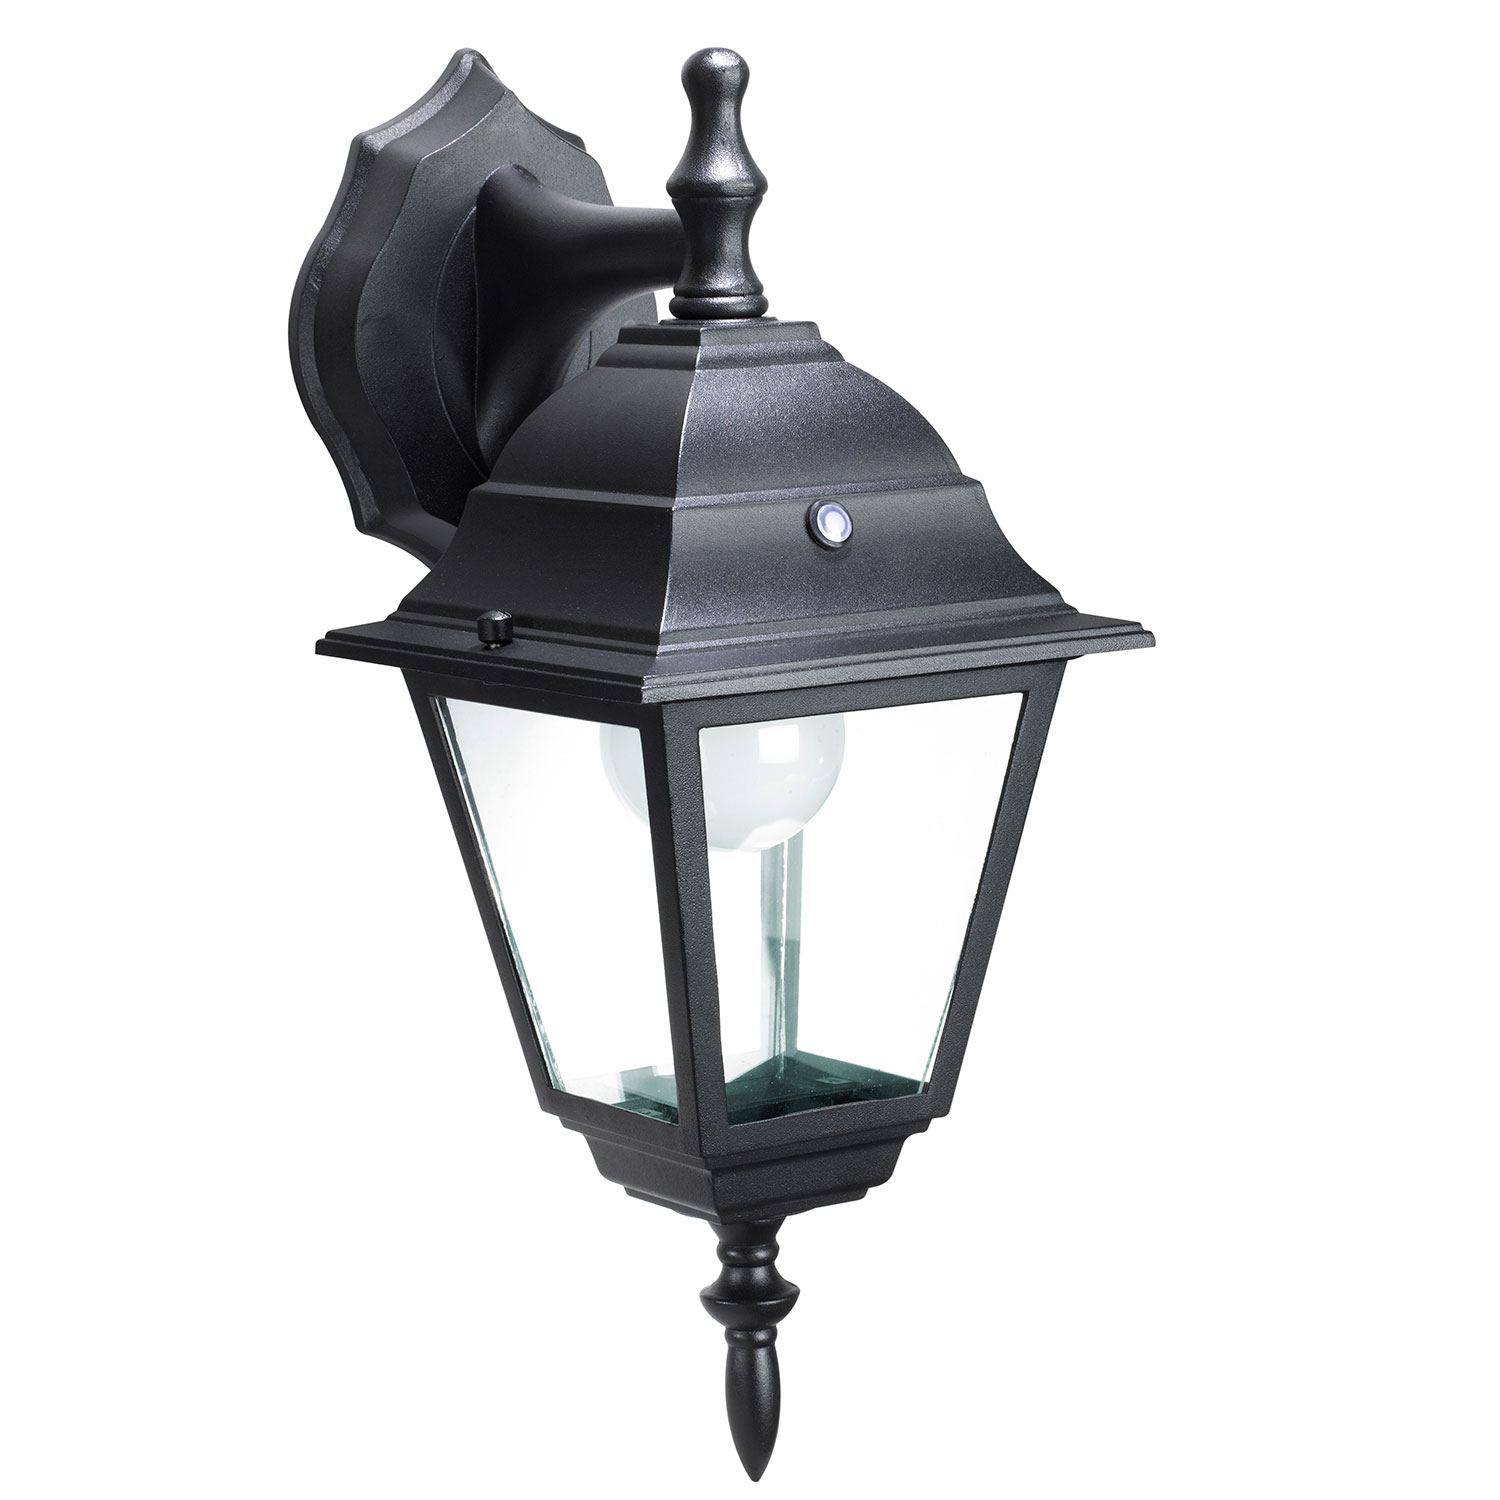 Wall Lantern Led : Honeywell SS0501-08 LED Outdoor Wall Mount Lantern Light, 3000K, 400 Lumens Honeywell Consumer ...